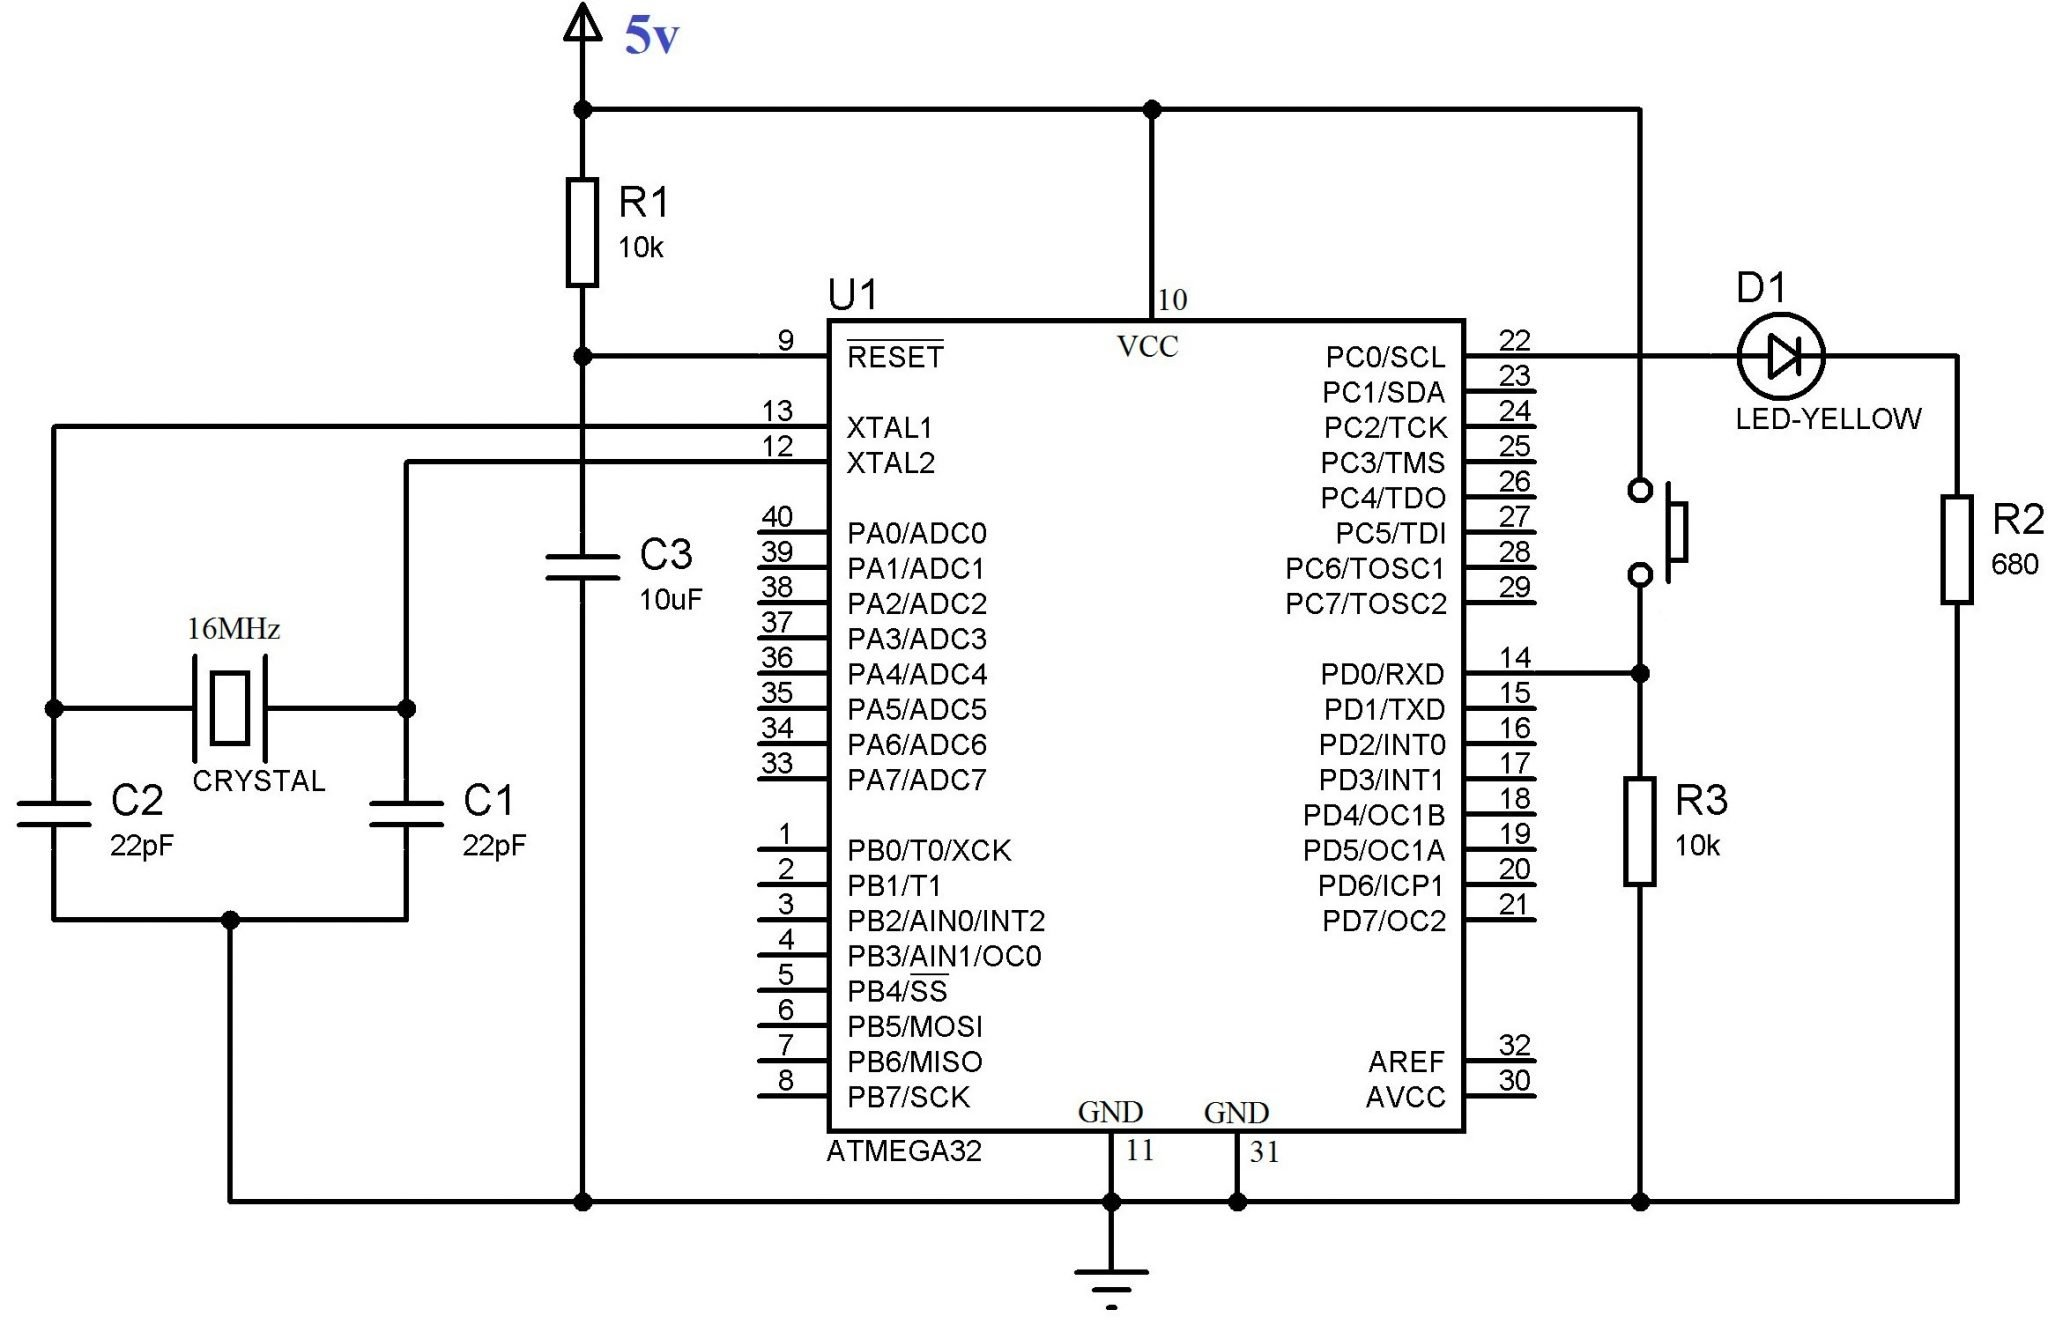 Using Push Button Switch With Atmega32 Microcontroller Atmel Studio Circuit Showing An Sp4t From Njr Demonstrates How The Diagram